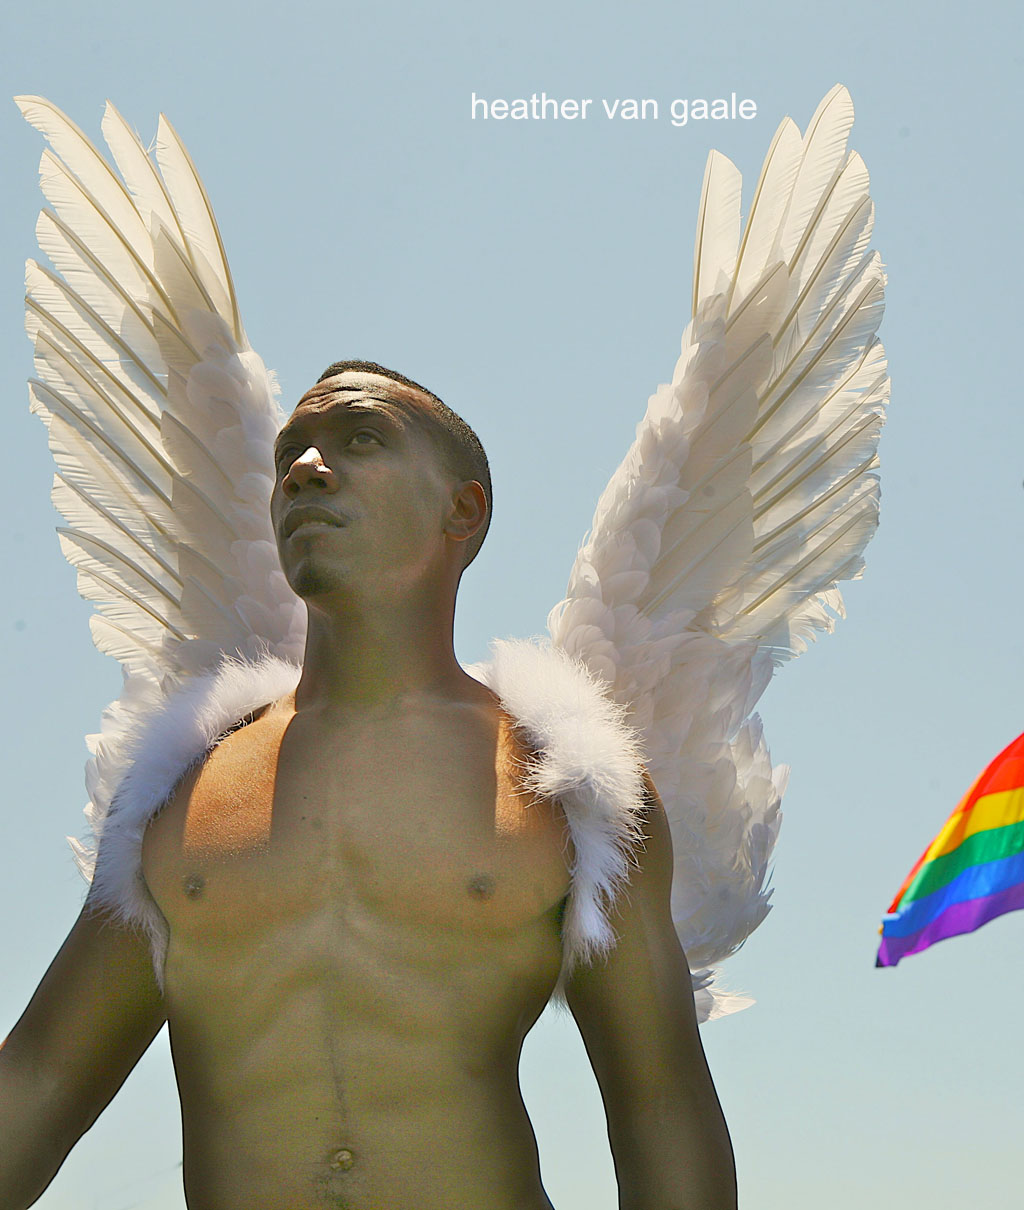 black gay angel rainbow art muscles